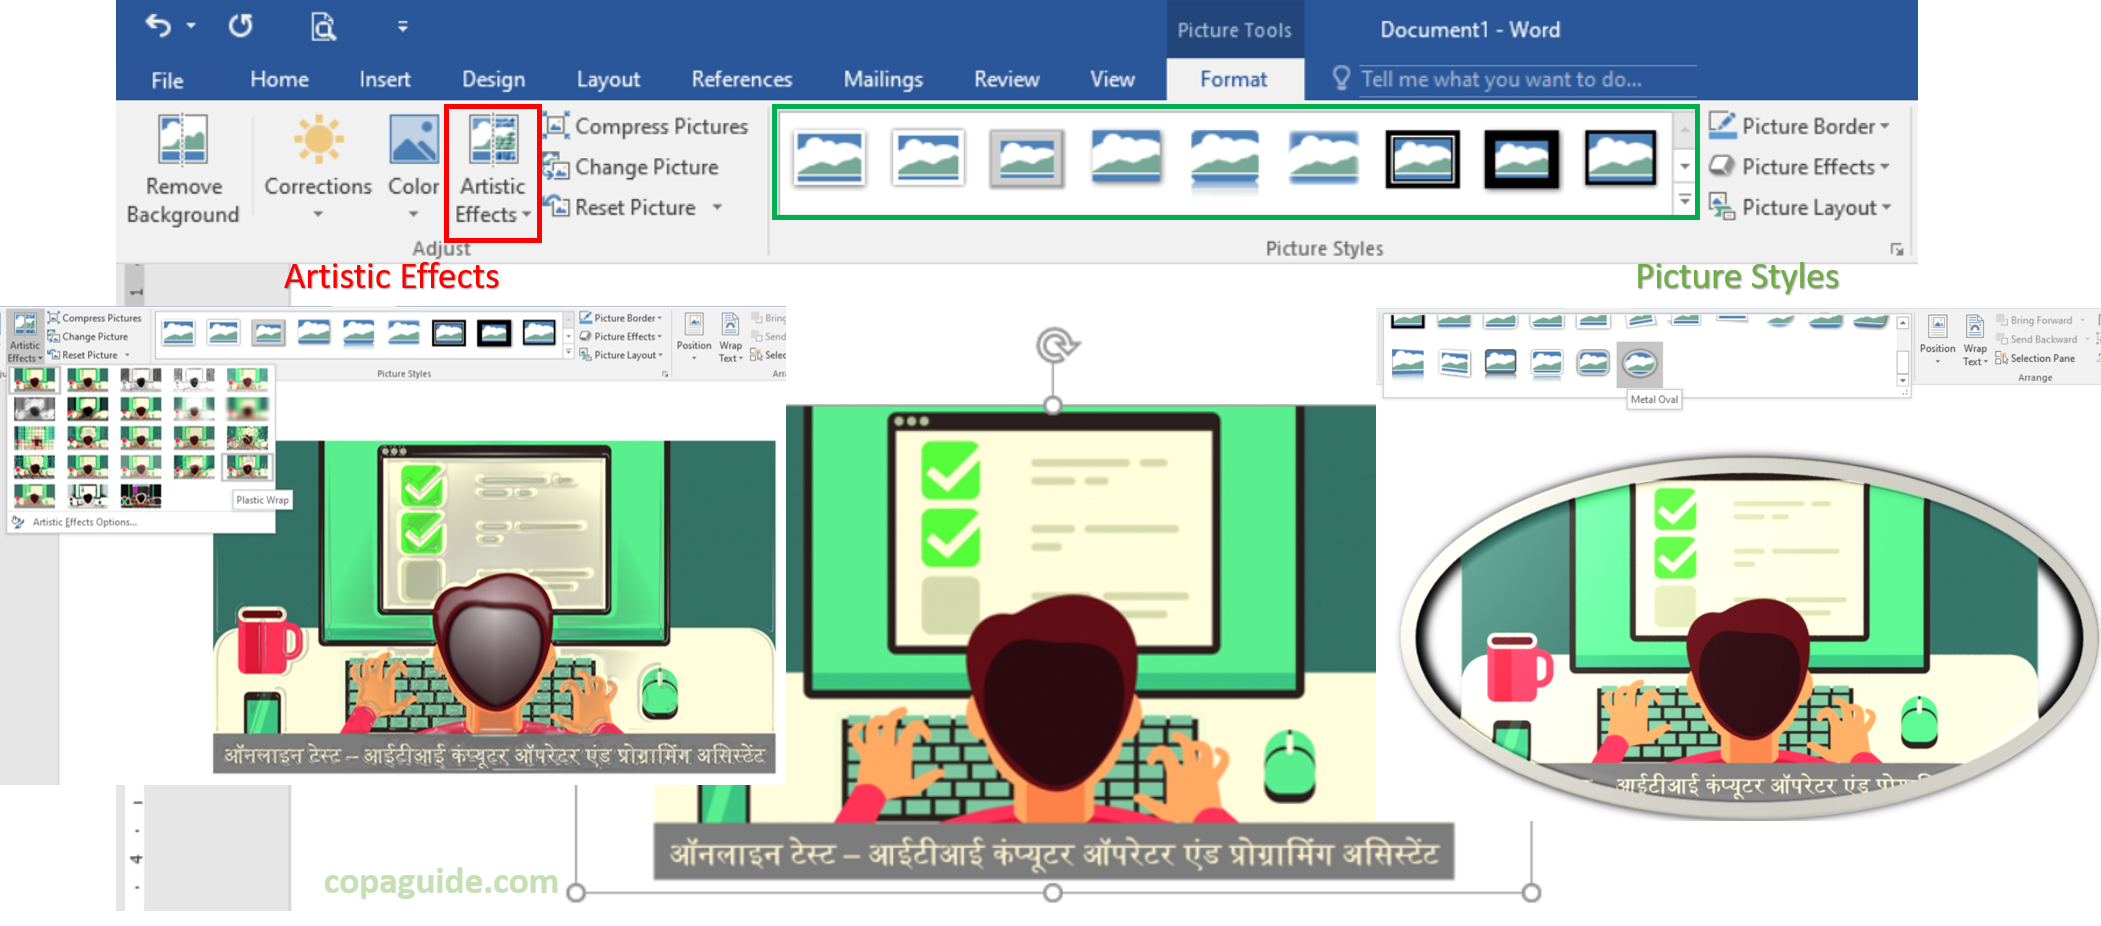 Picture Tools Adjust and Picture Styles in MS-Word Hindi Notes